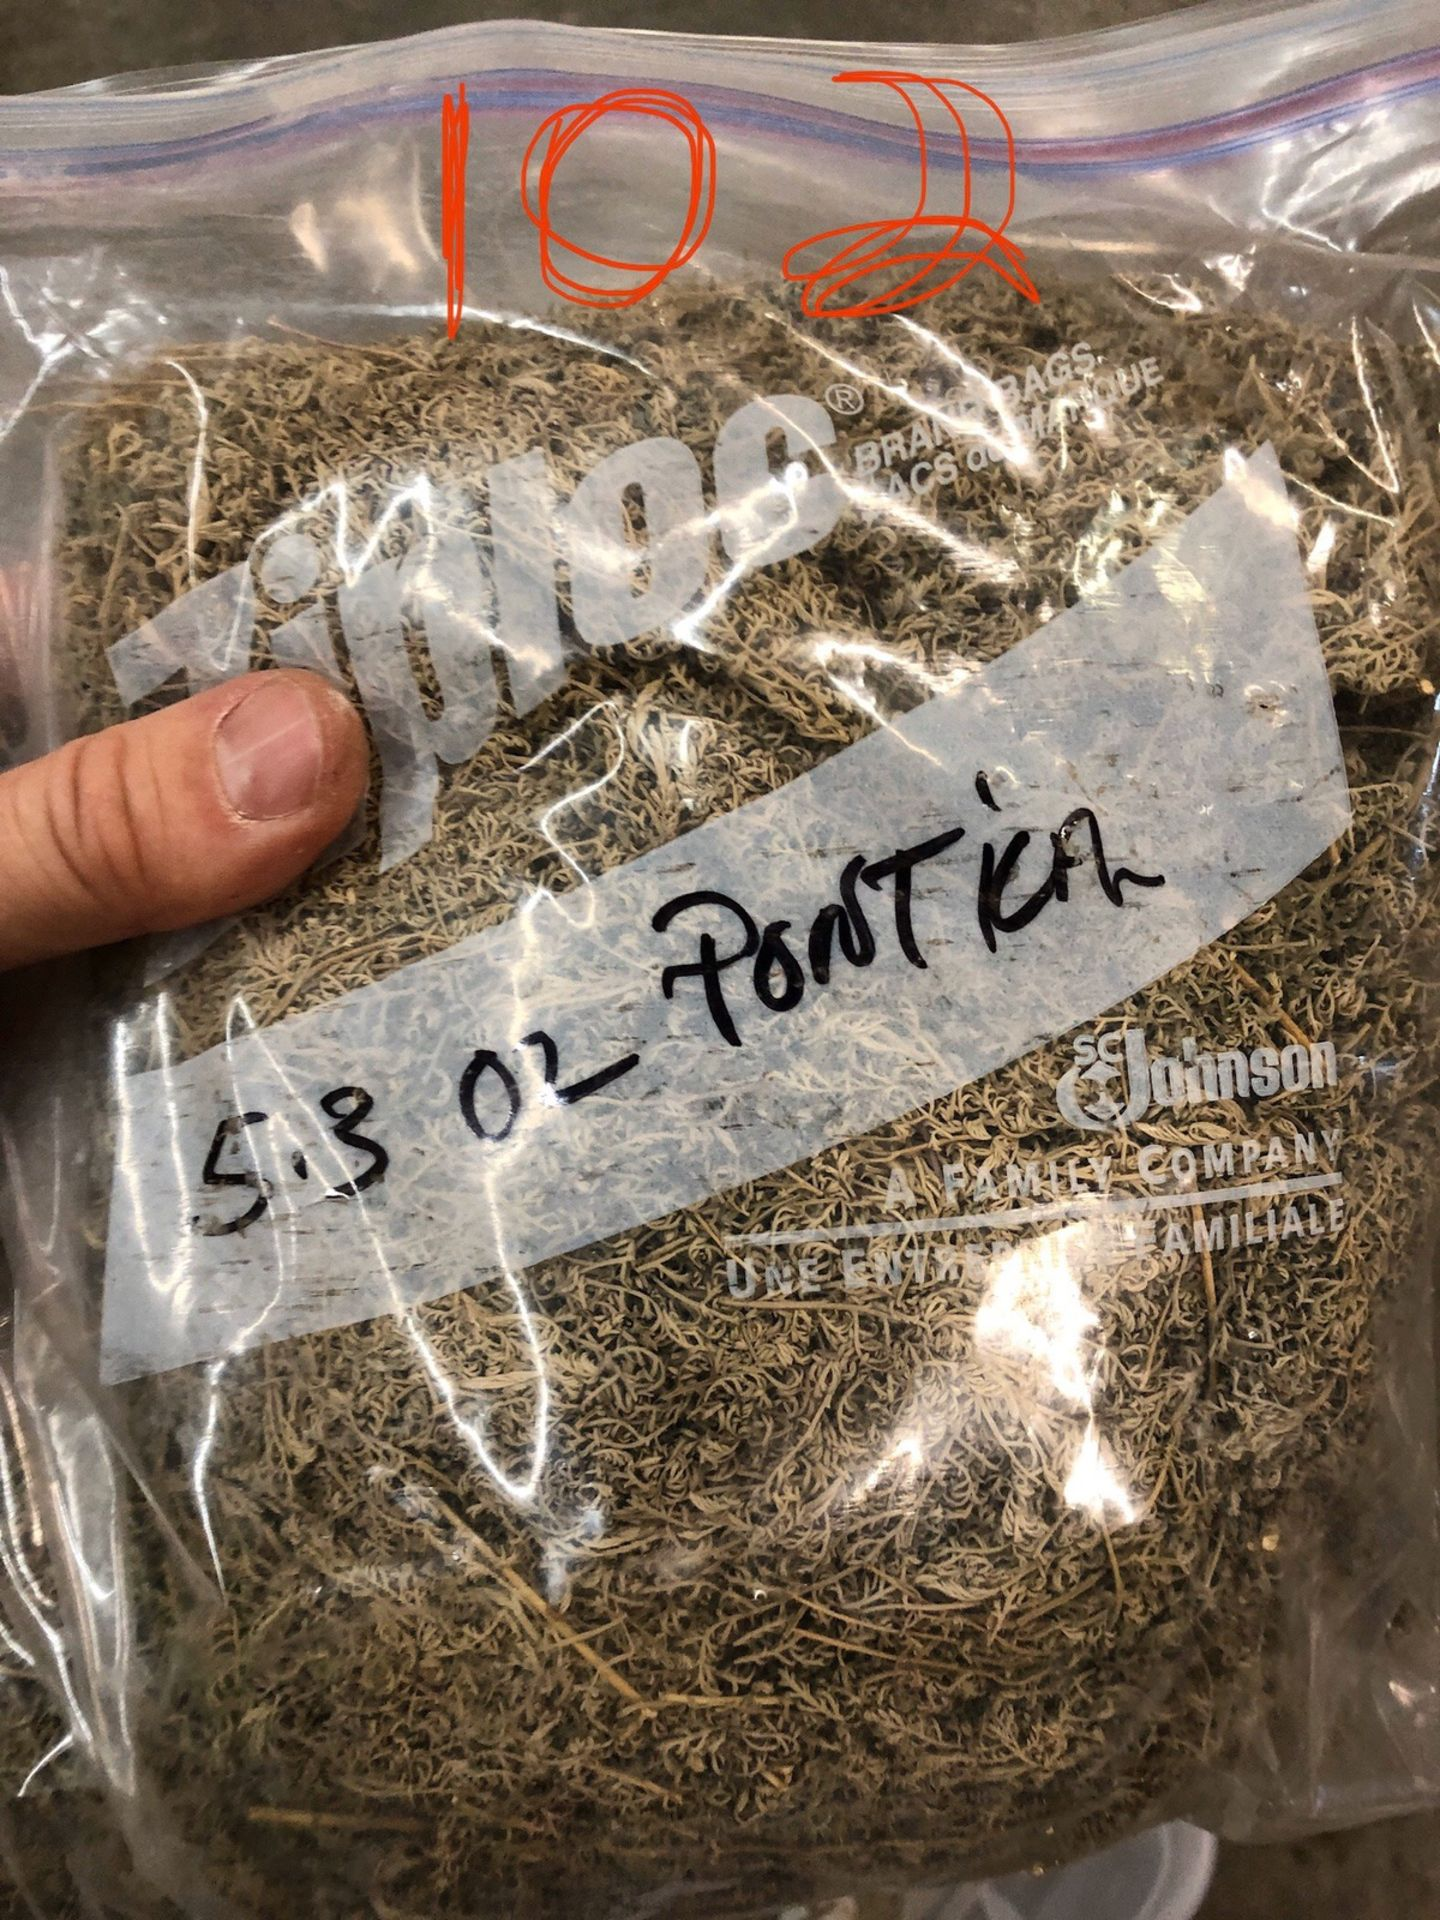 Lot 102 - Lot of Herbs and Botanicals: Ponitica, Wormwood Herb C/S (Weight to be Provided | Rig Fee: $20 or HC